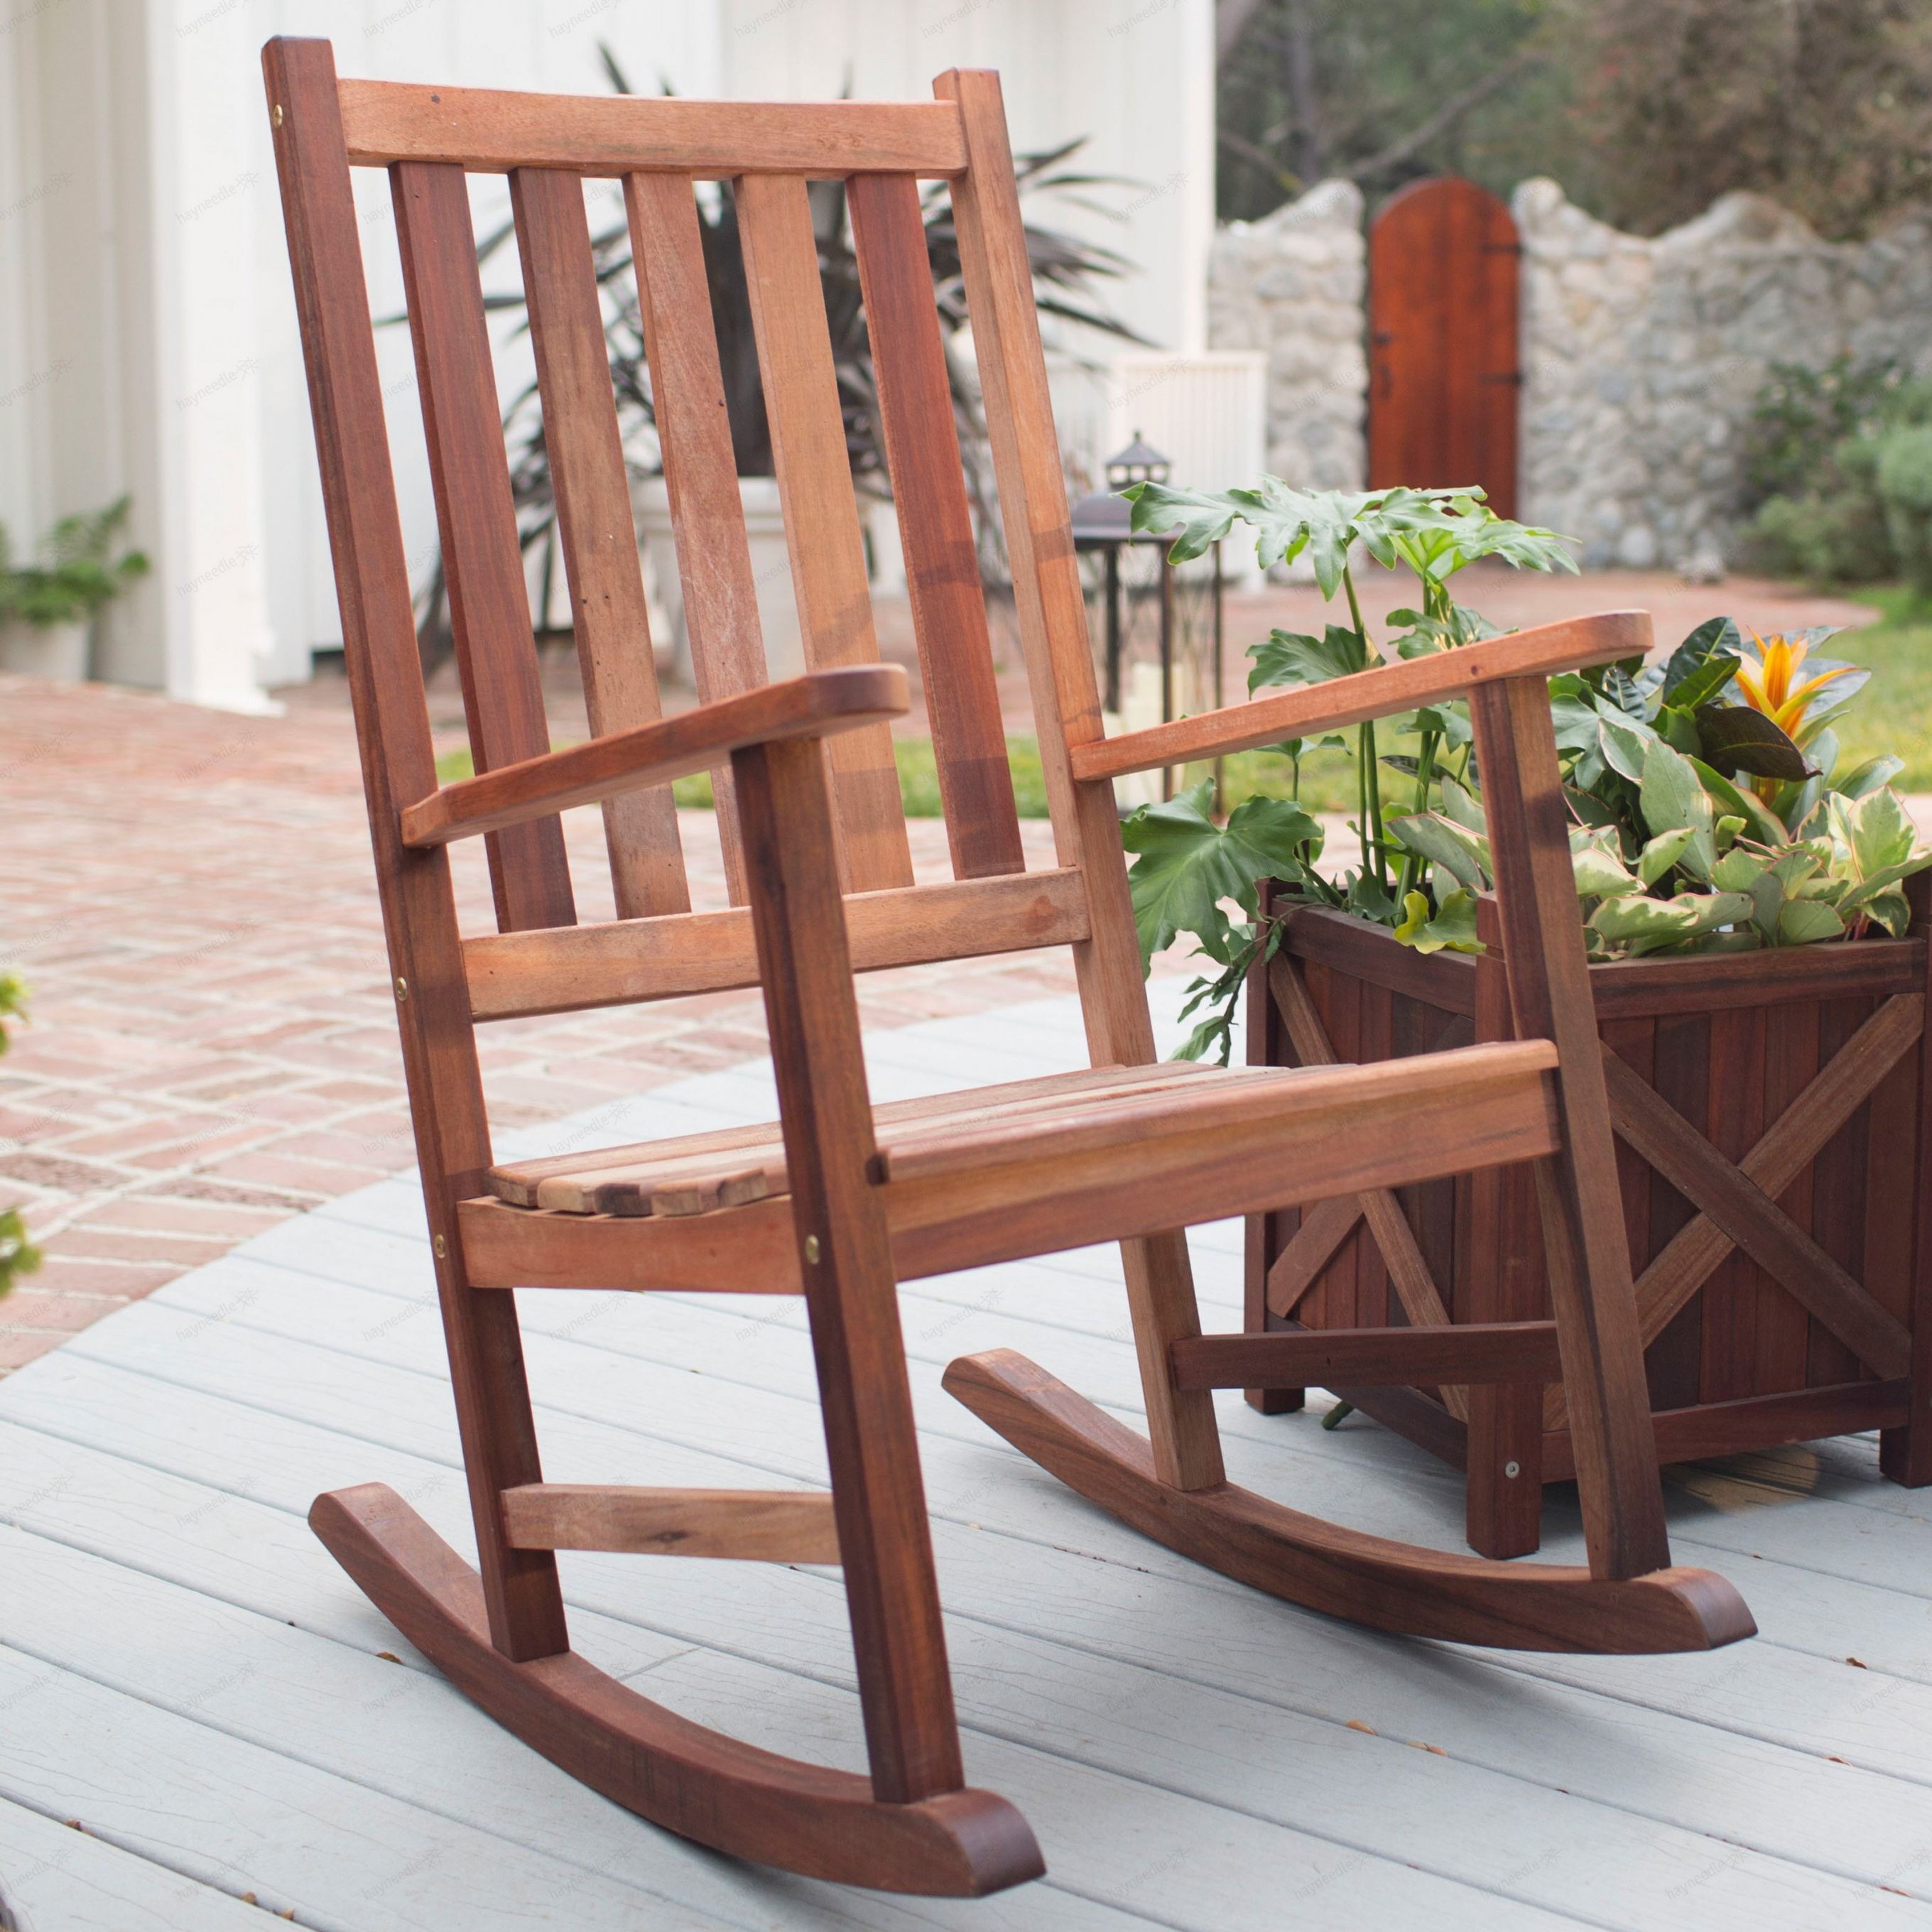 Outdoor Schaukelstuhl Moderne Outdoor Schaukelstuhl Stühle In 2019 Pinterest